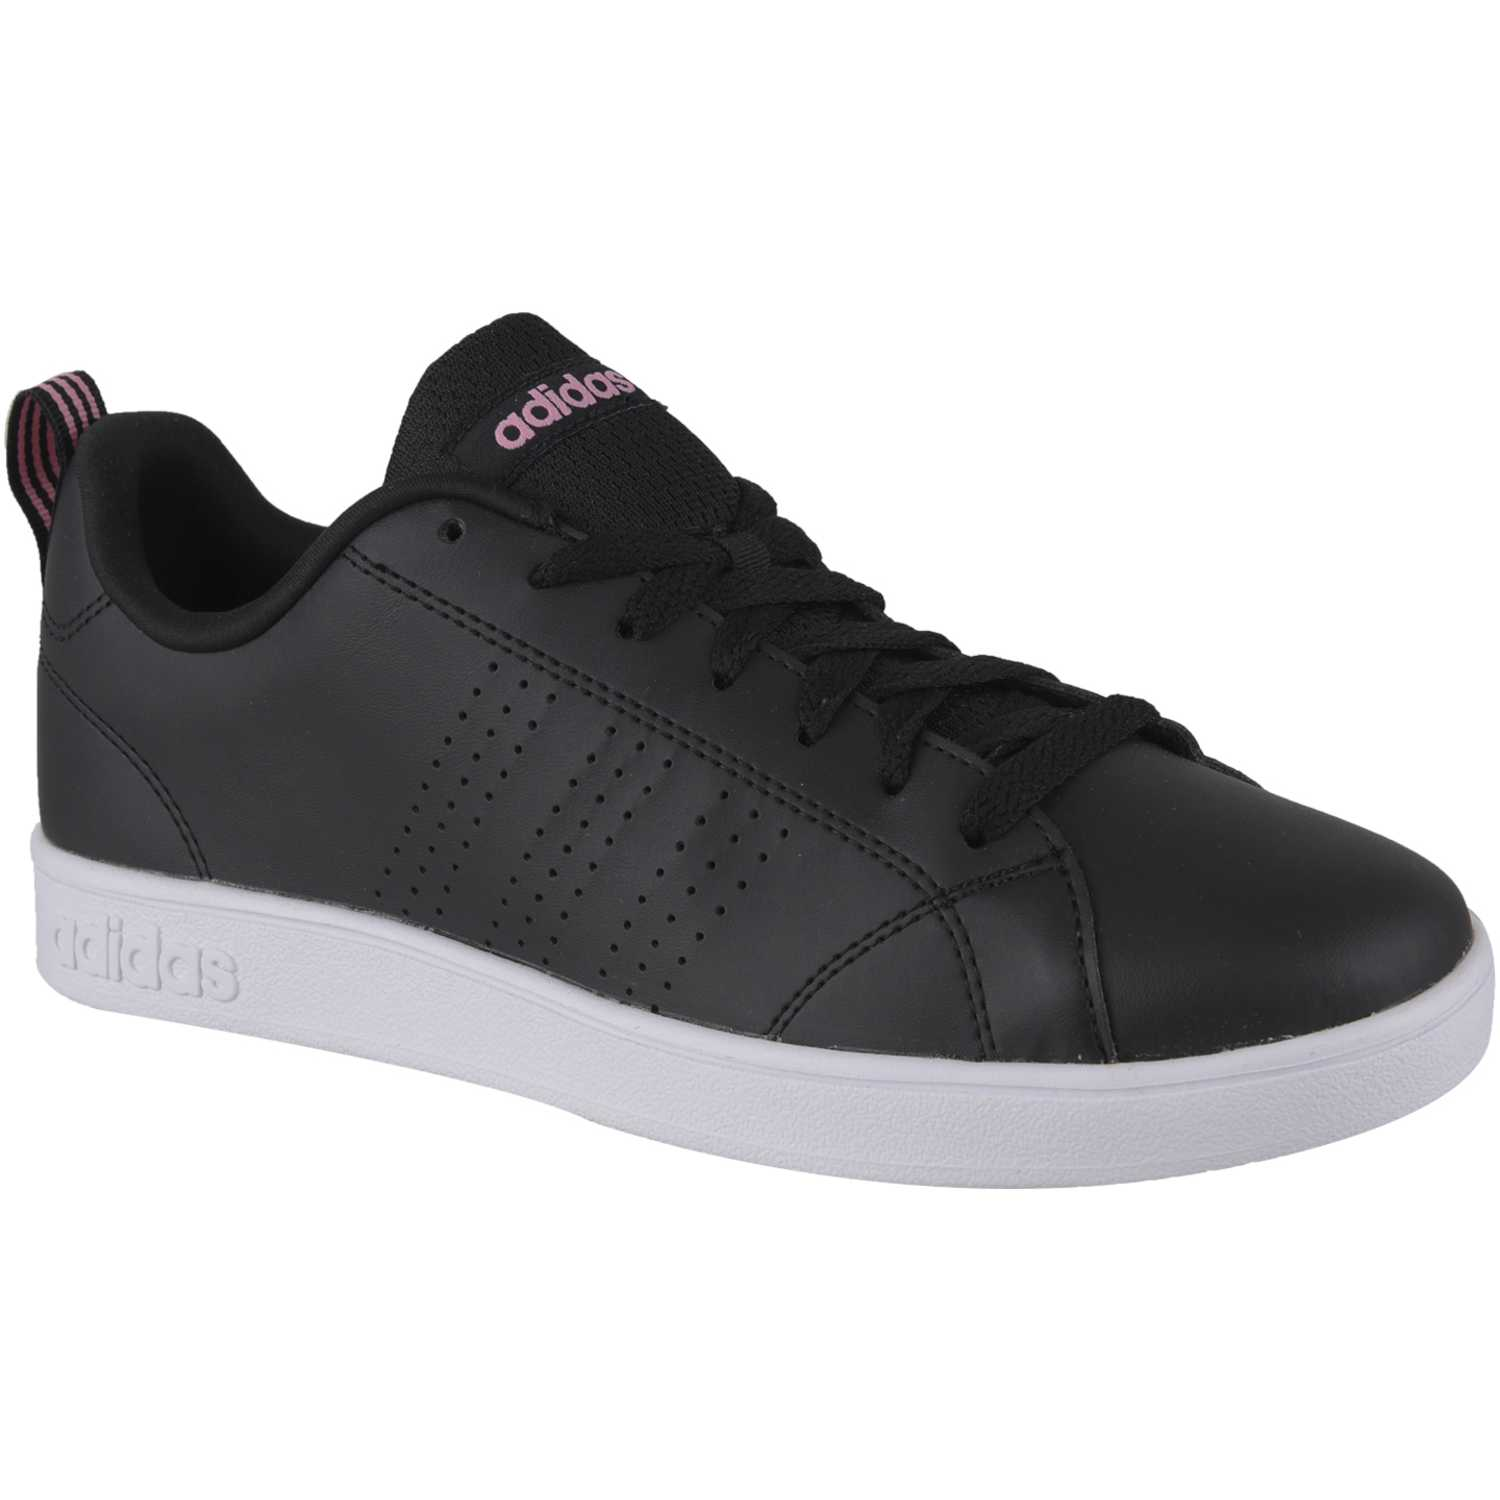 adidas NEO vs advantage cl Negro / blanco Walking ...